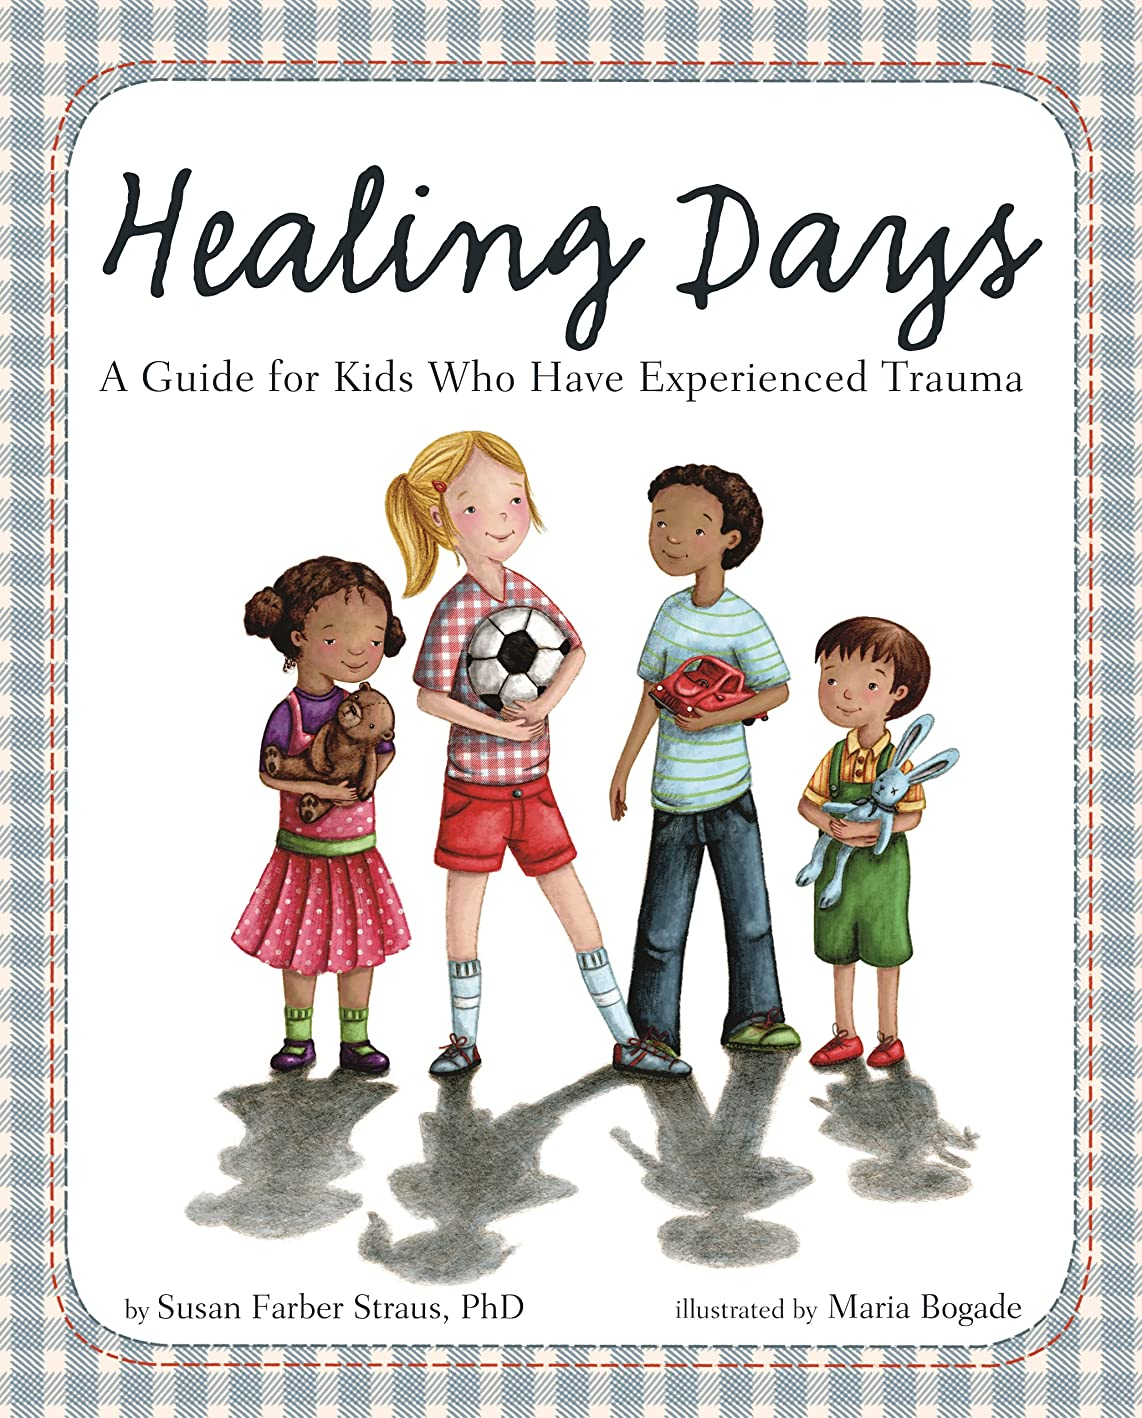 振り返る関税ドレインHealing Days: A Guide for Kids Who Have Experienced Trauma (English Edition)